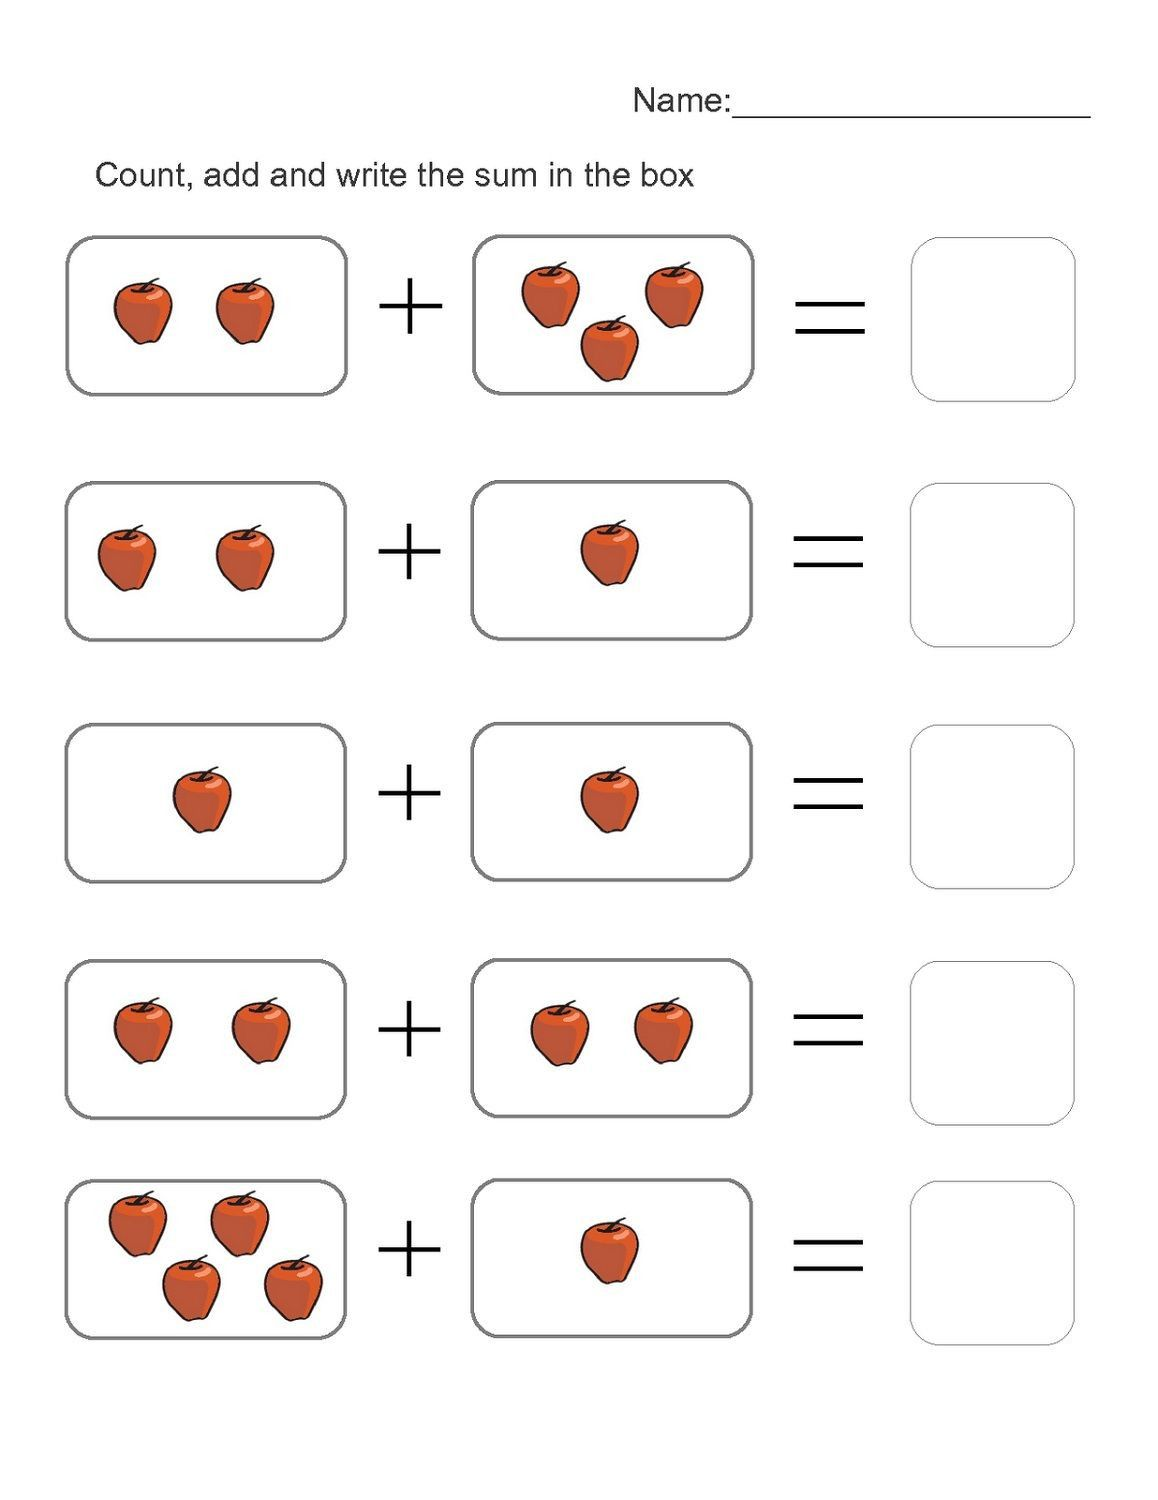 3 Simple Addition Worksheets With Pictures 4 Year Old Worksheets Kids L Math Addition Worksheets Kindergarten Worksheets Printable Free Kindergarten Worksheets